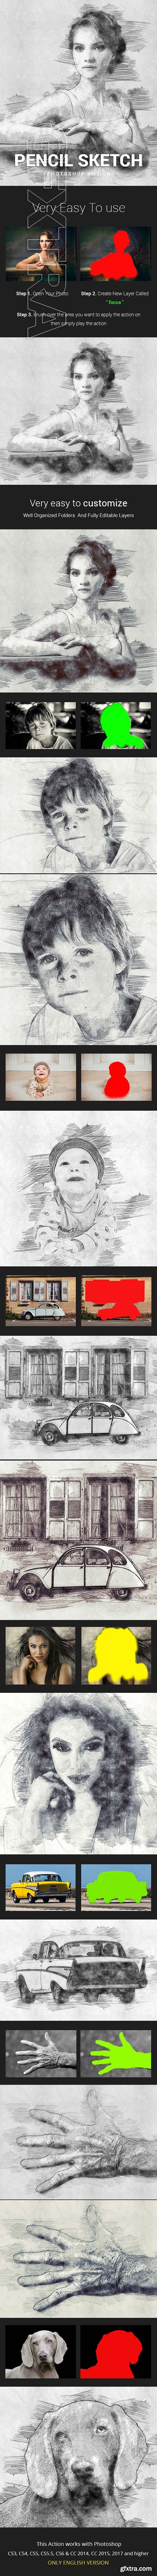 GraphicRiver - Pencil Sketch Photoshop Action Photo Effects 21683660